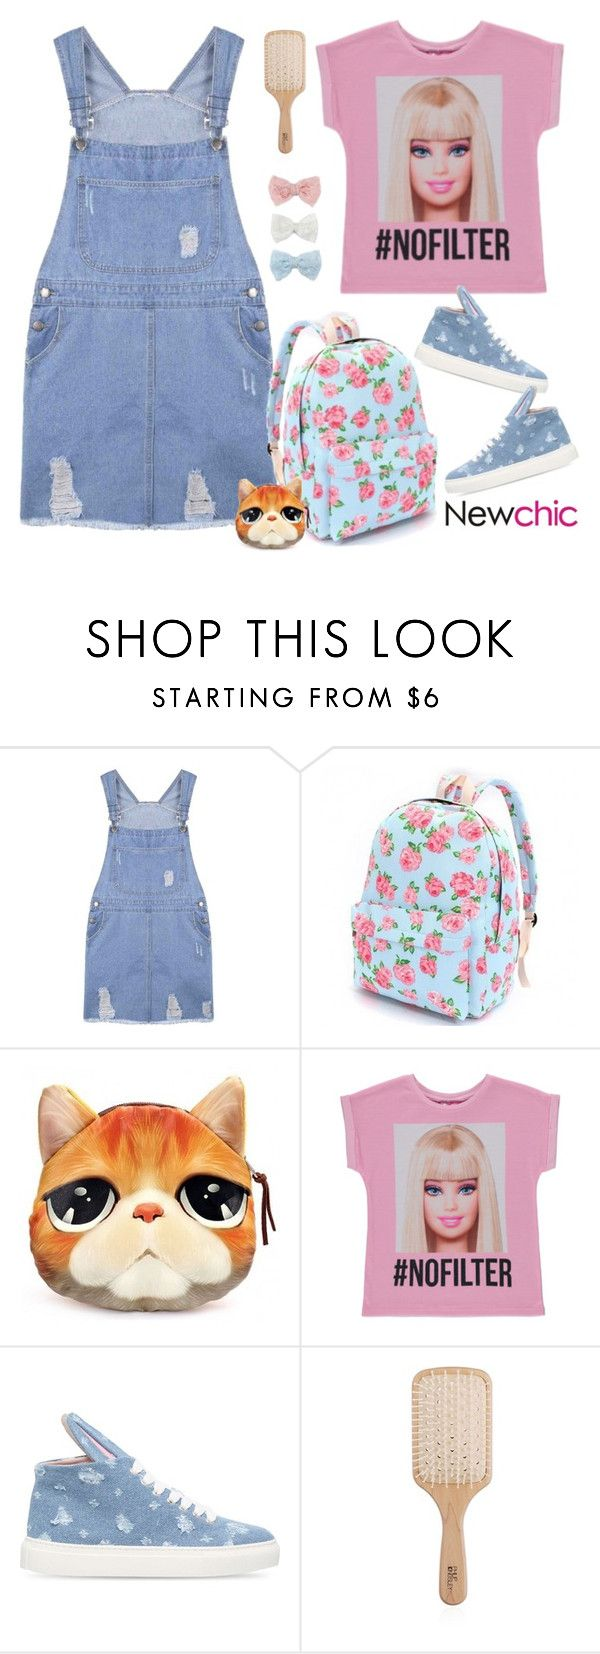 """""""Newchic deux"""" by natcatt ❤ liked on Polyvore featuring George, Minna Parikka, Philip Kingsley, Decree and lovenewchic"""